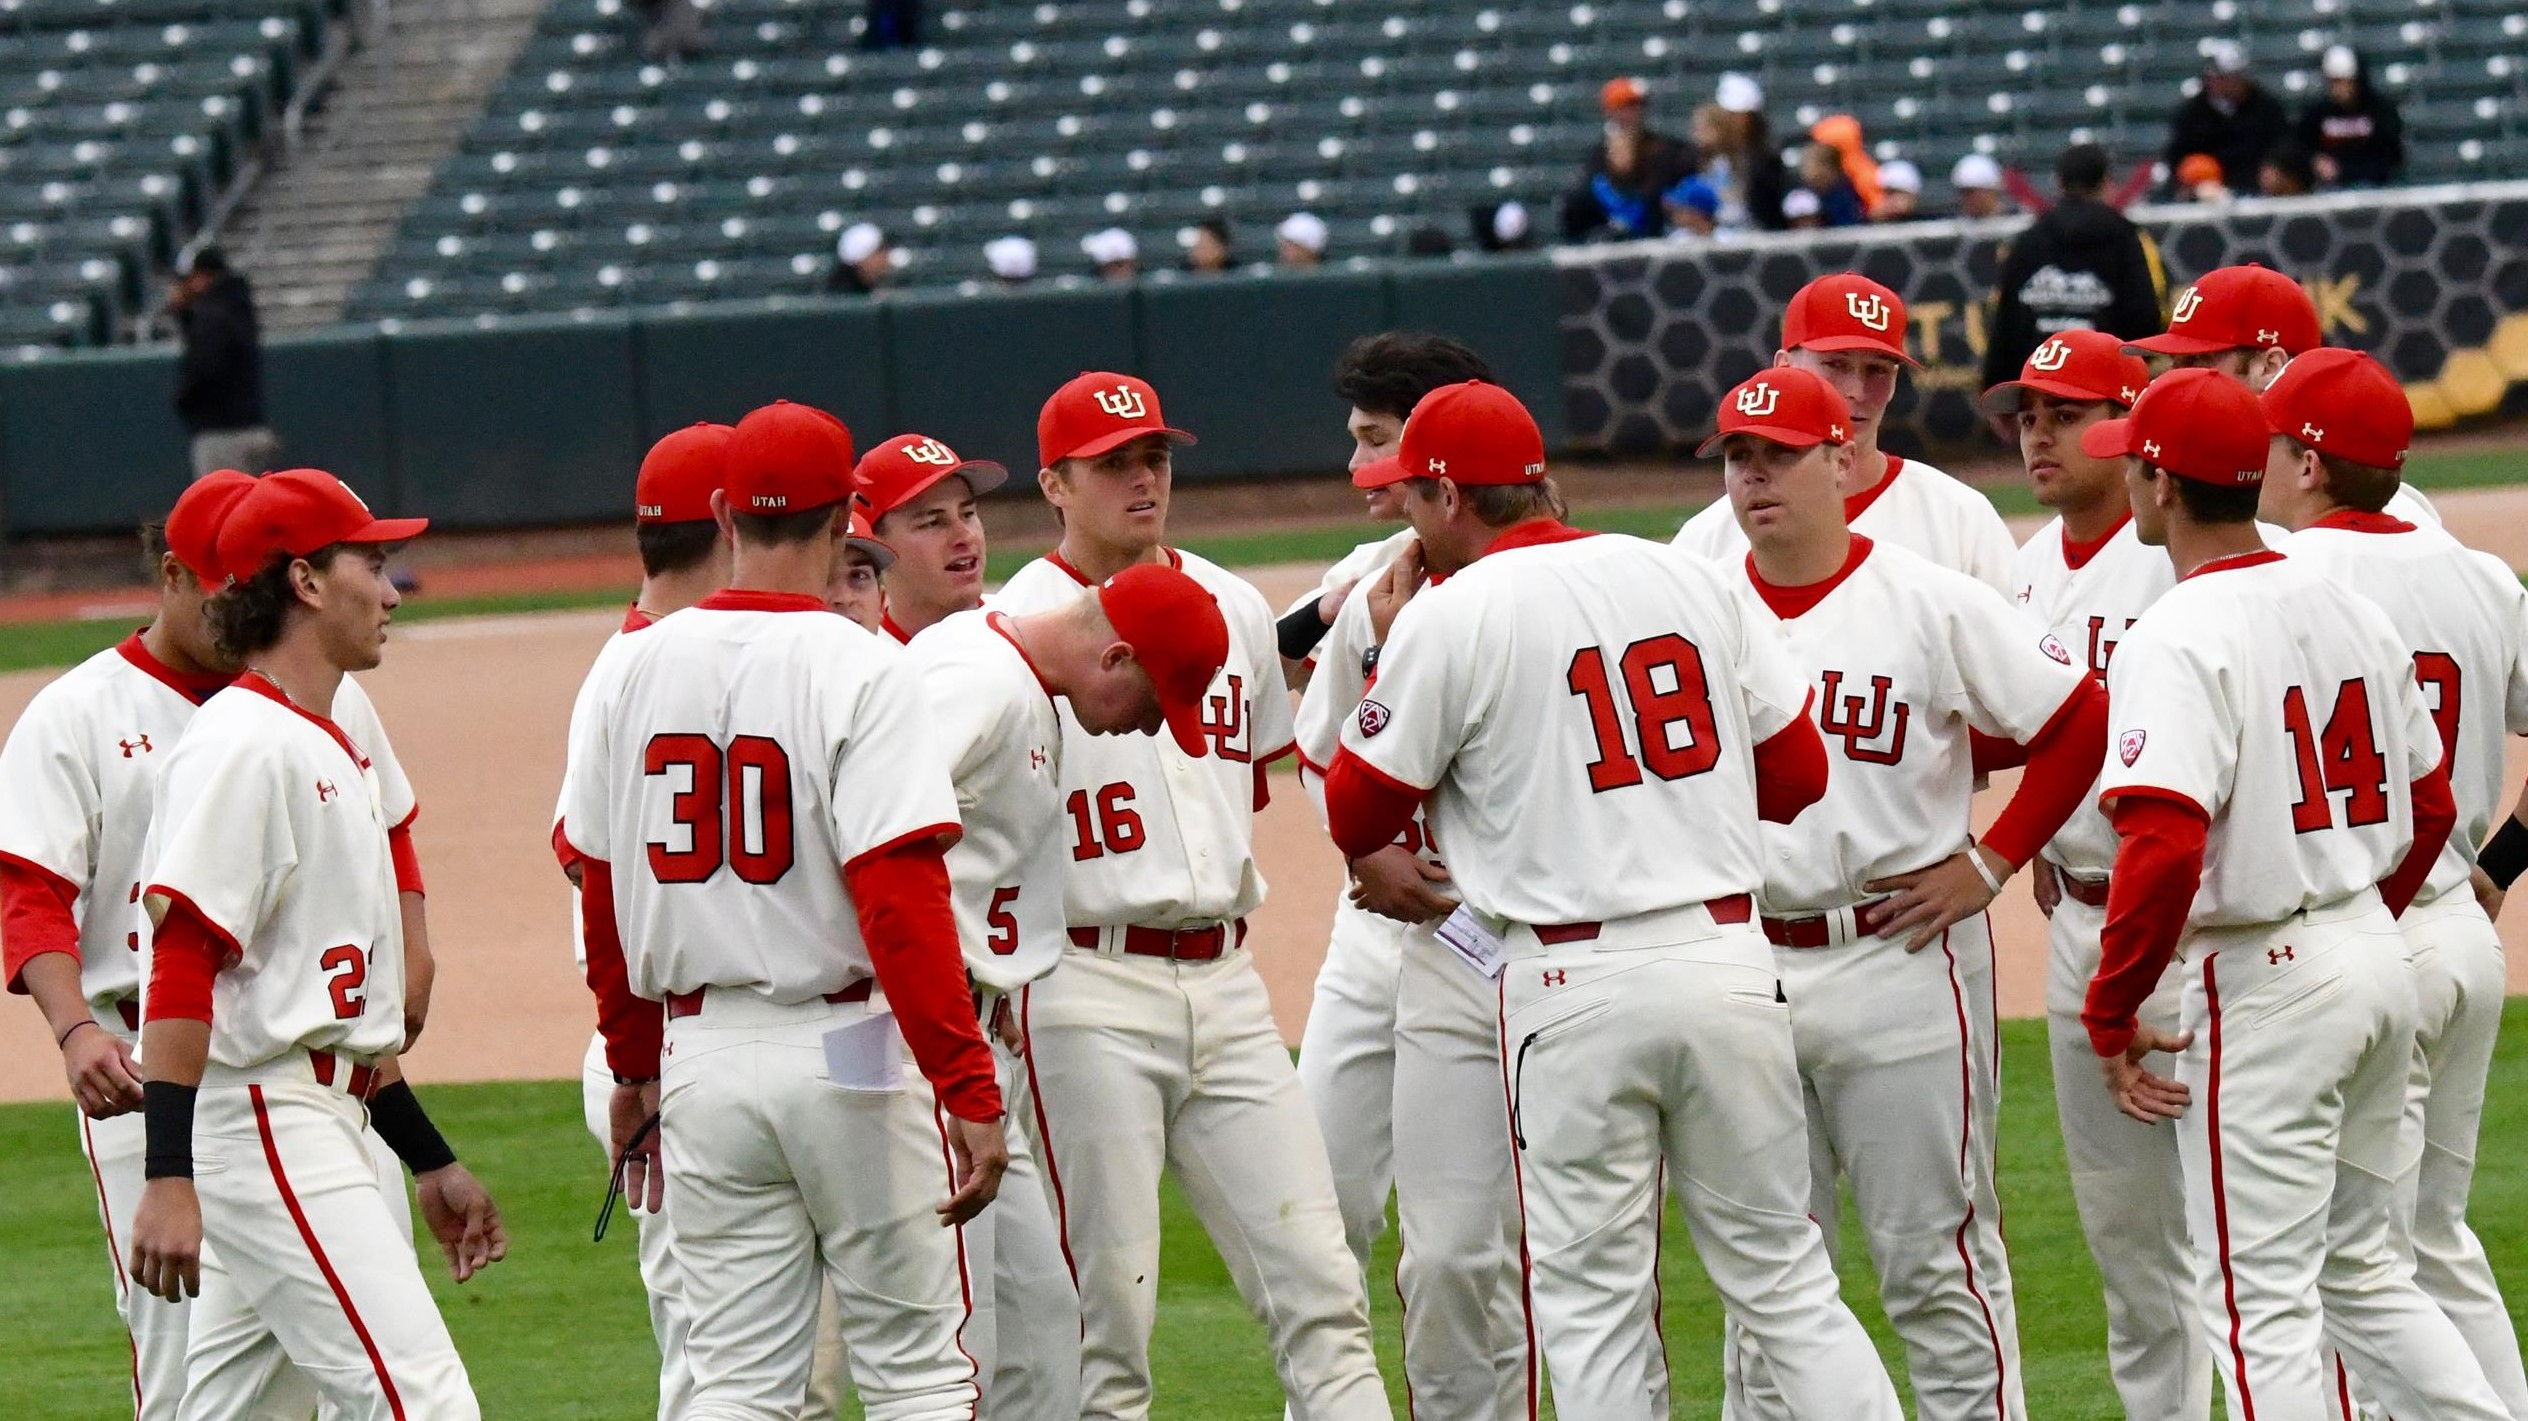 Utah Baseball Signs Seven To National Letter Of Intent